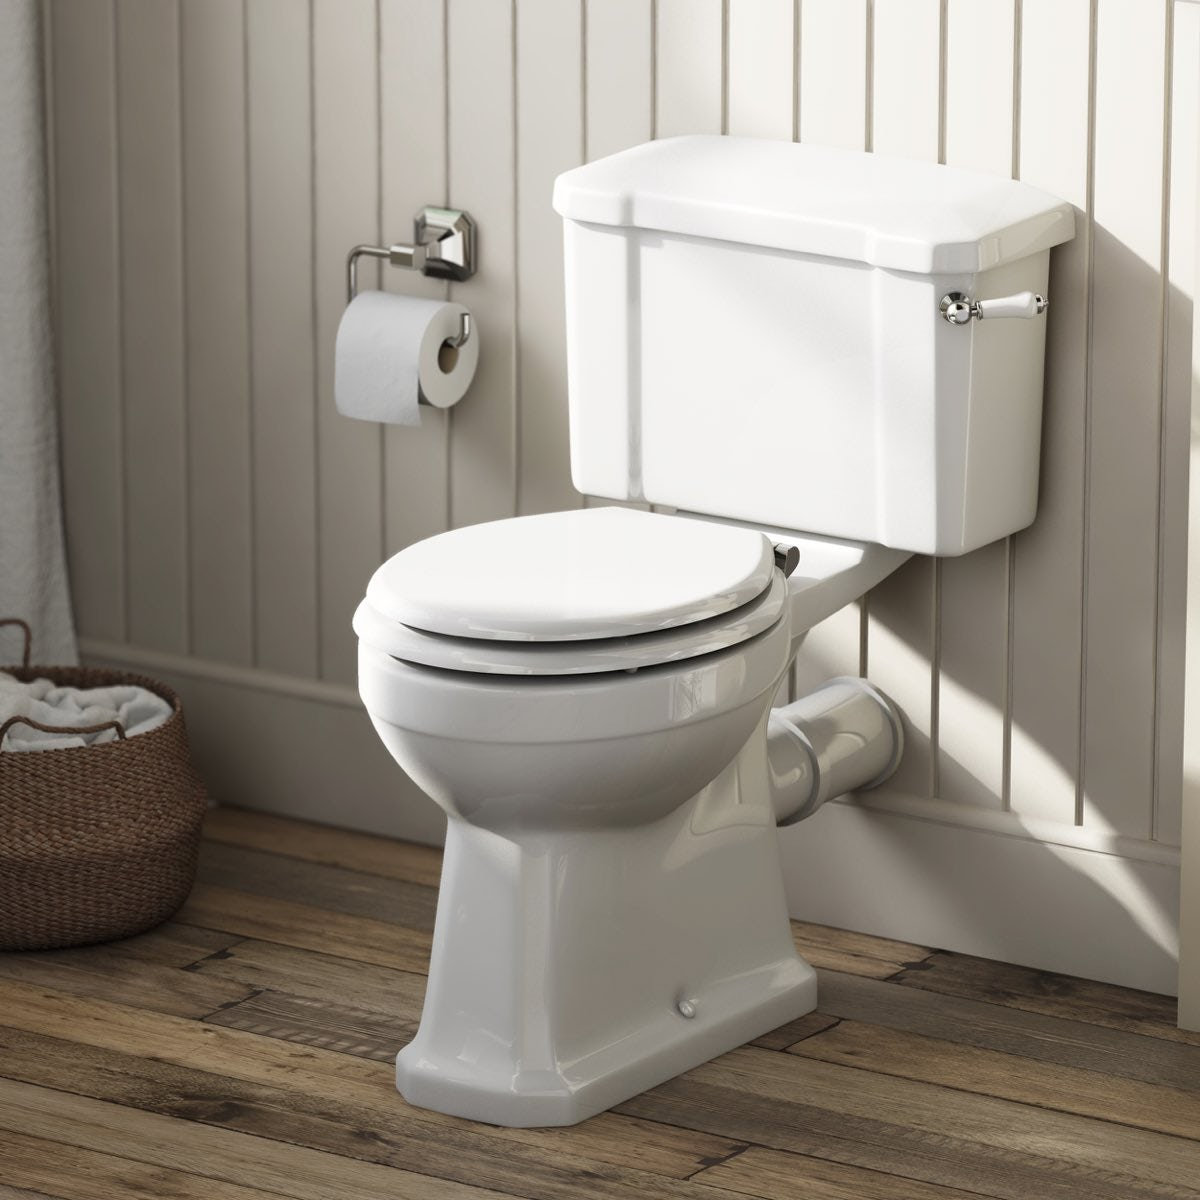 Camberley close coupled toilet with wooden soft seat white The Bath Co